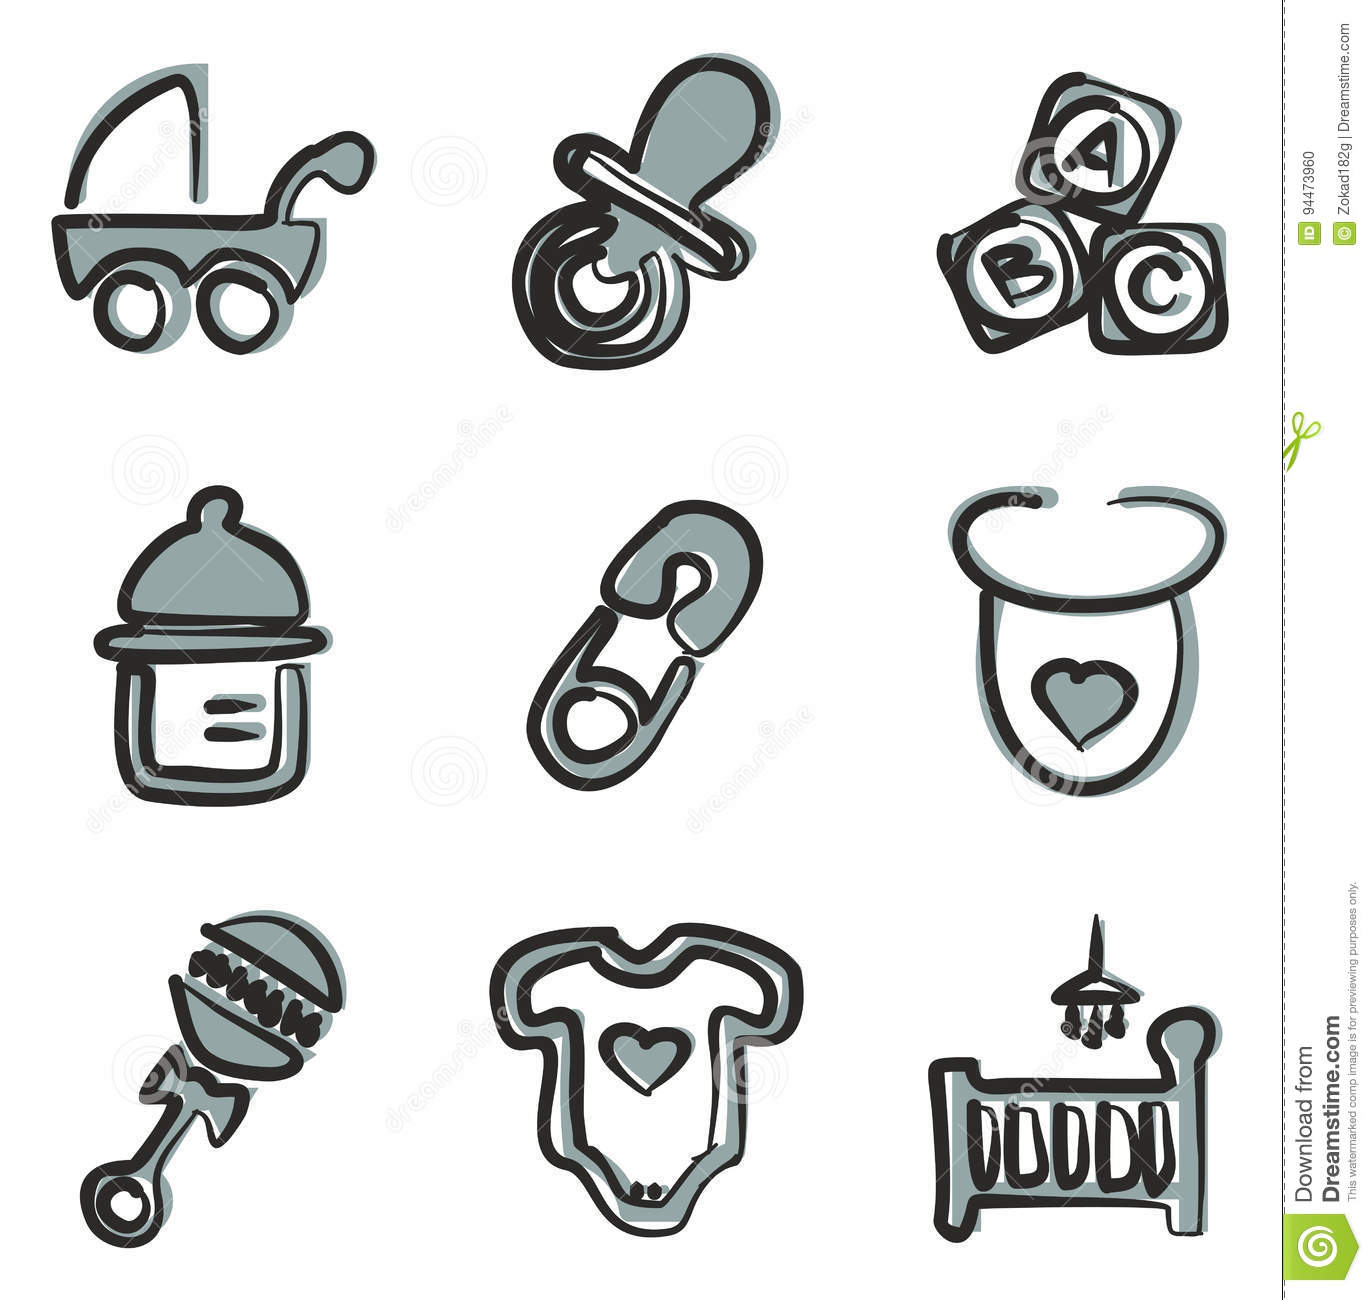 Baby Stuff Icons Freehand 2 Color Stock Vector - Illustration of ...